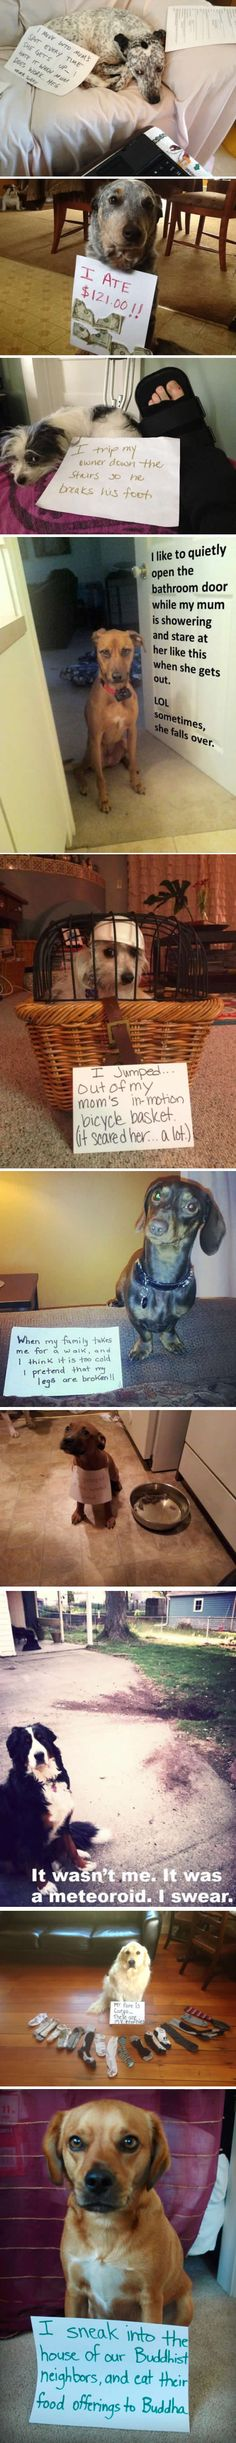 Best of Dog Shaming.  Think my favourite is the one of the dog waiting for his owner in the shower.